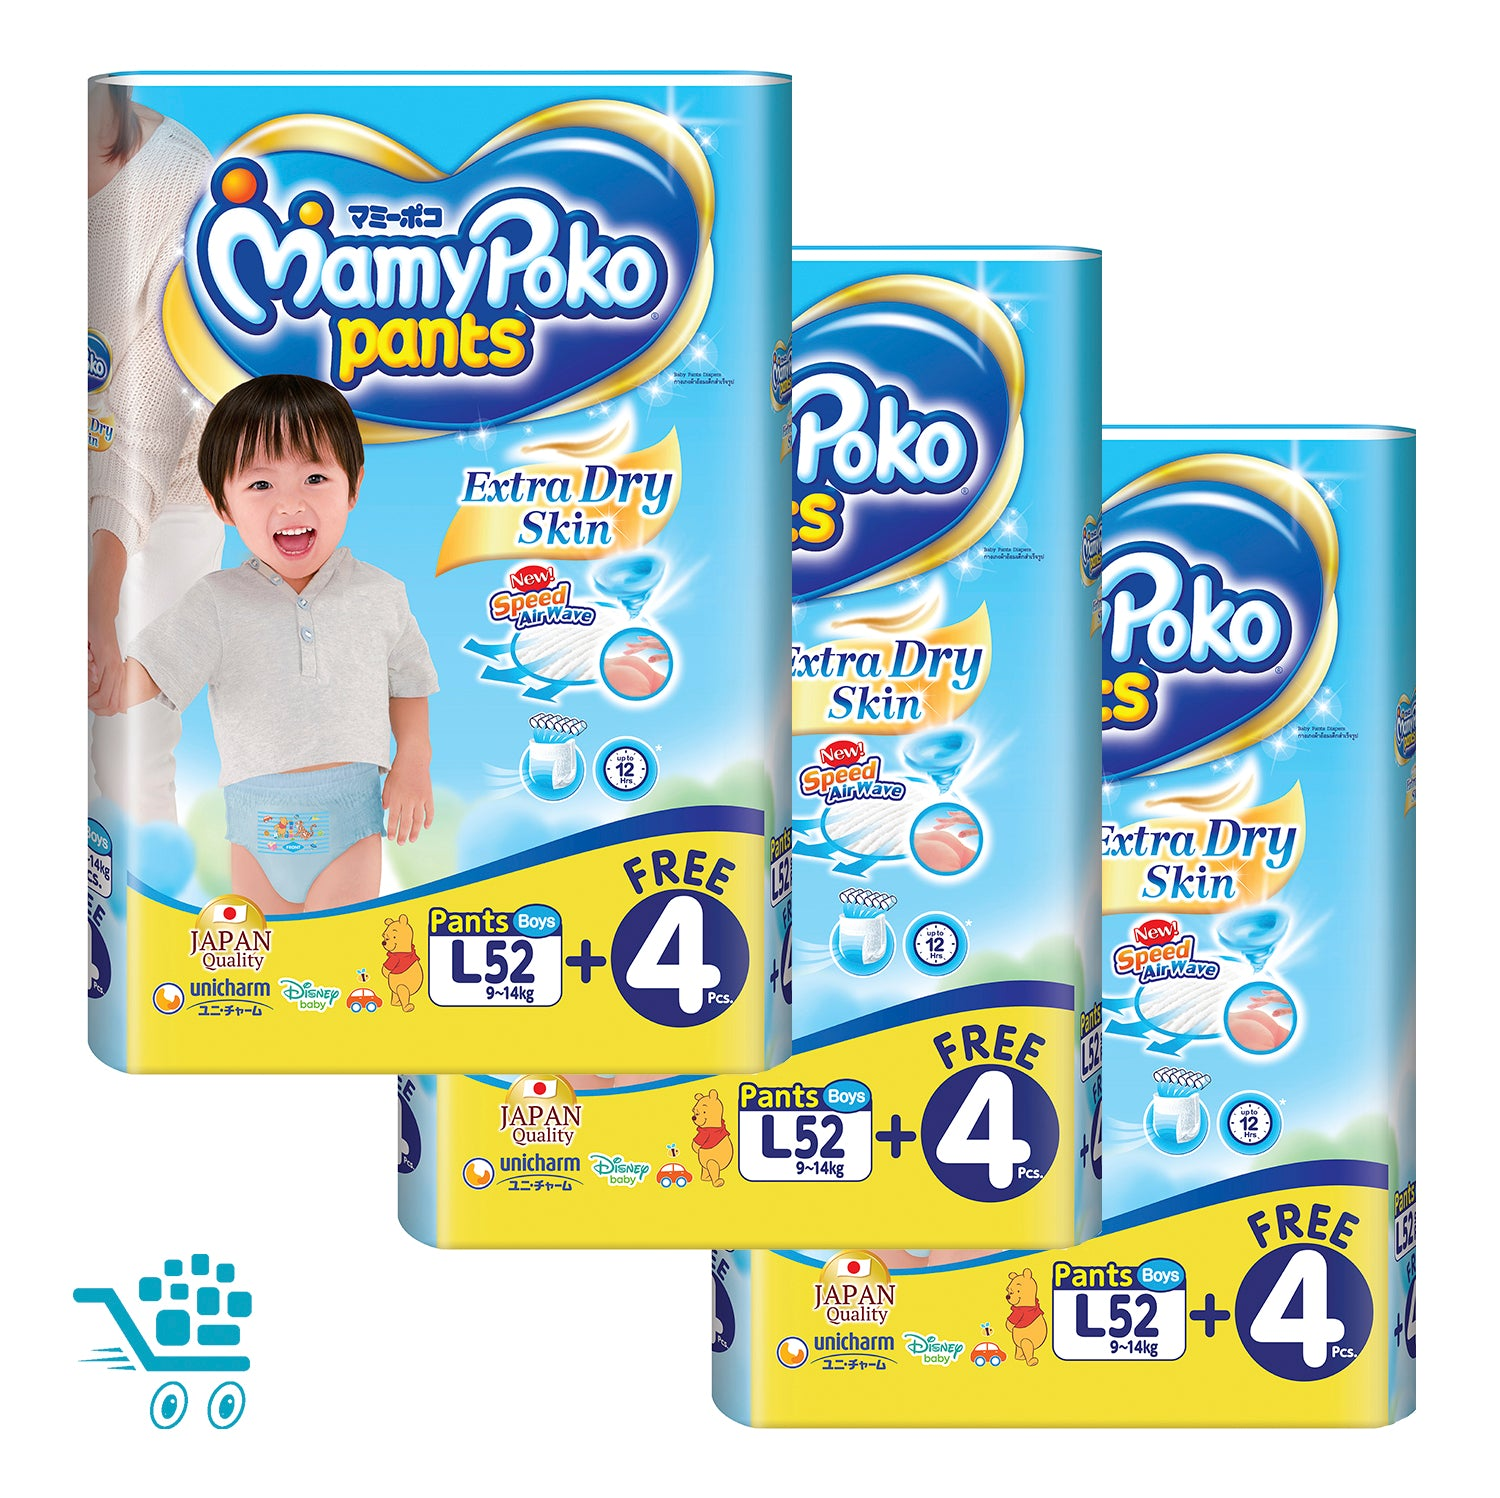 MamyPoko Extra Dry Skin Pants Bonus Pack Boy L 52+4 pieces x 3 packs